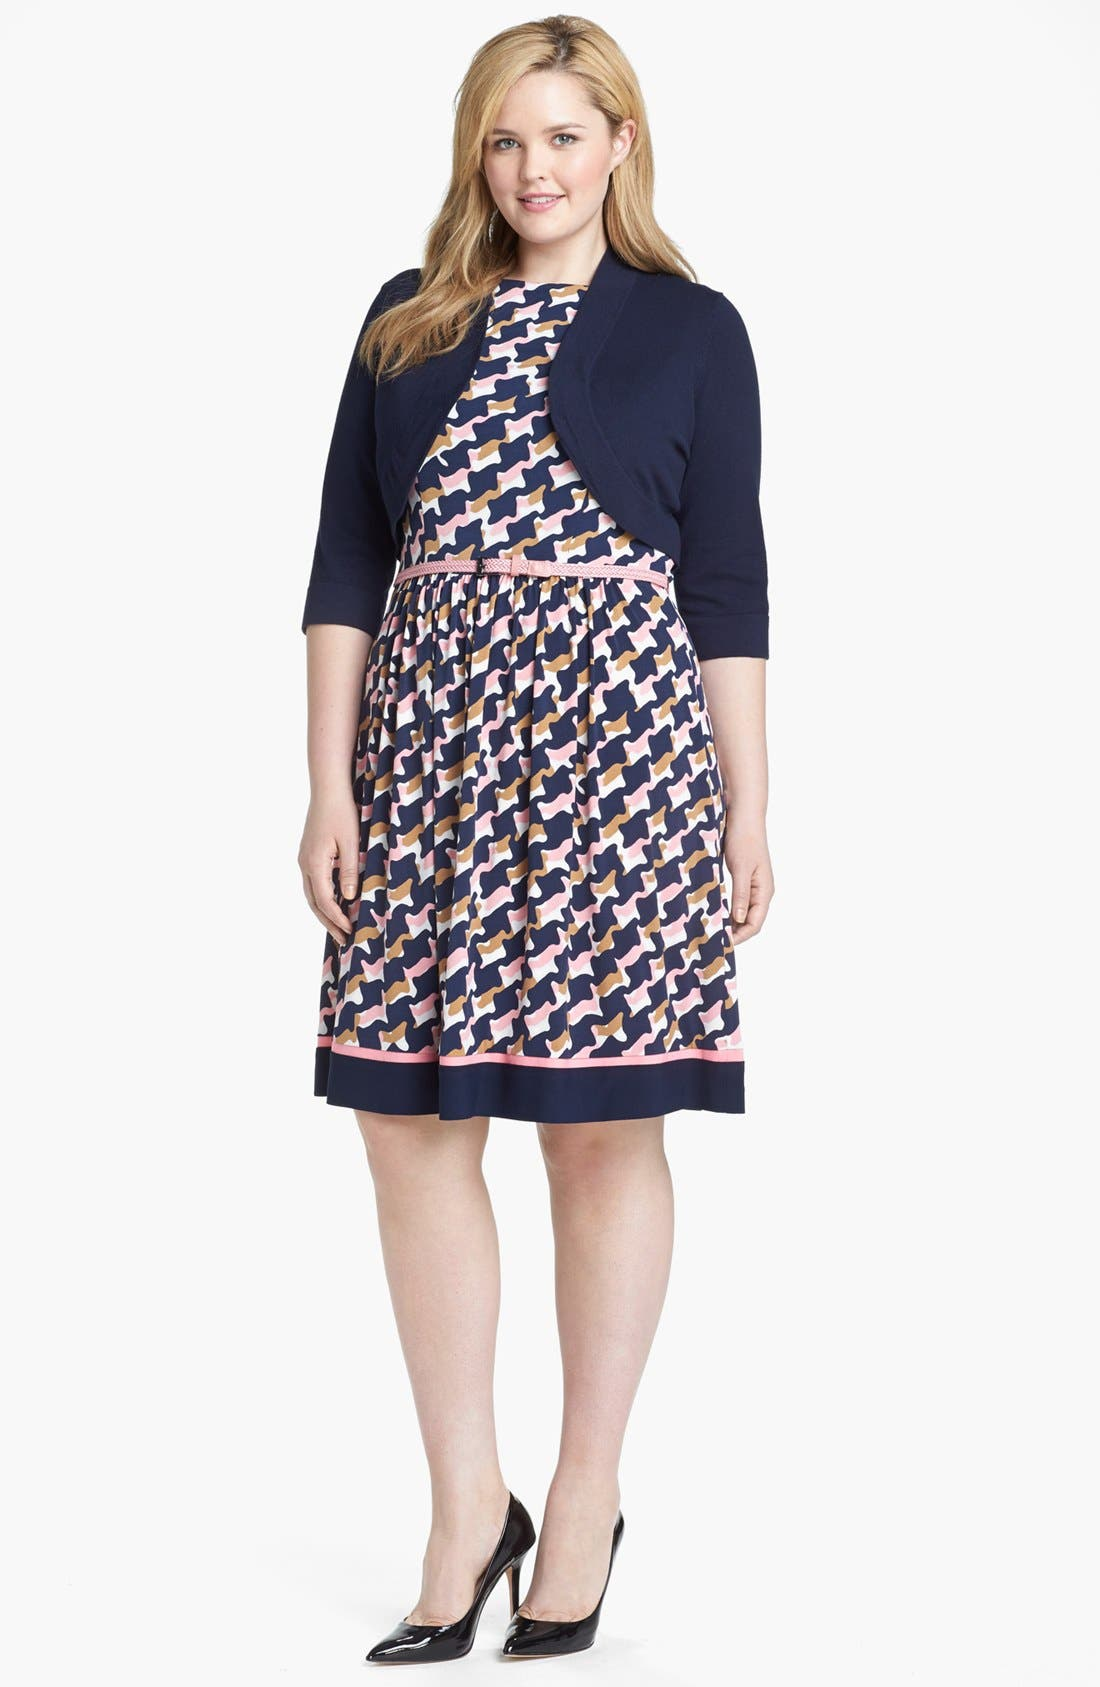 Alternate Image 1 Selected - Eliza J Print Dress & Bolero (Plus Size)